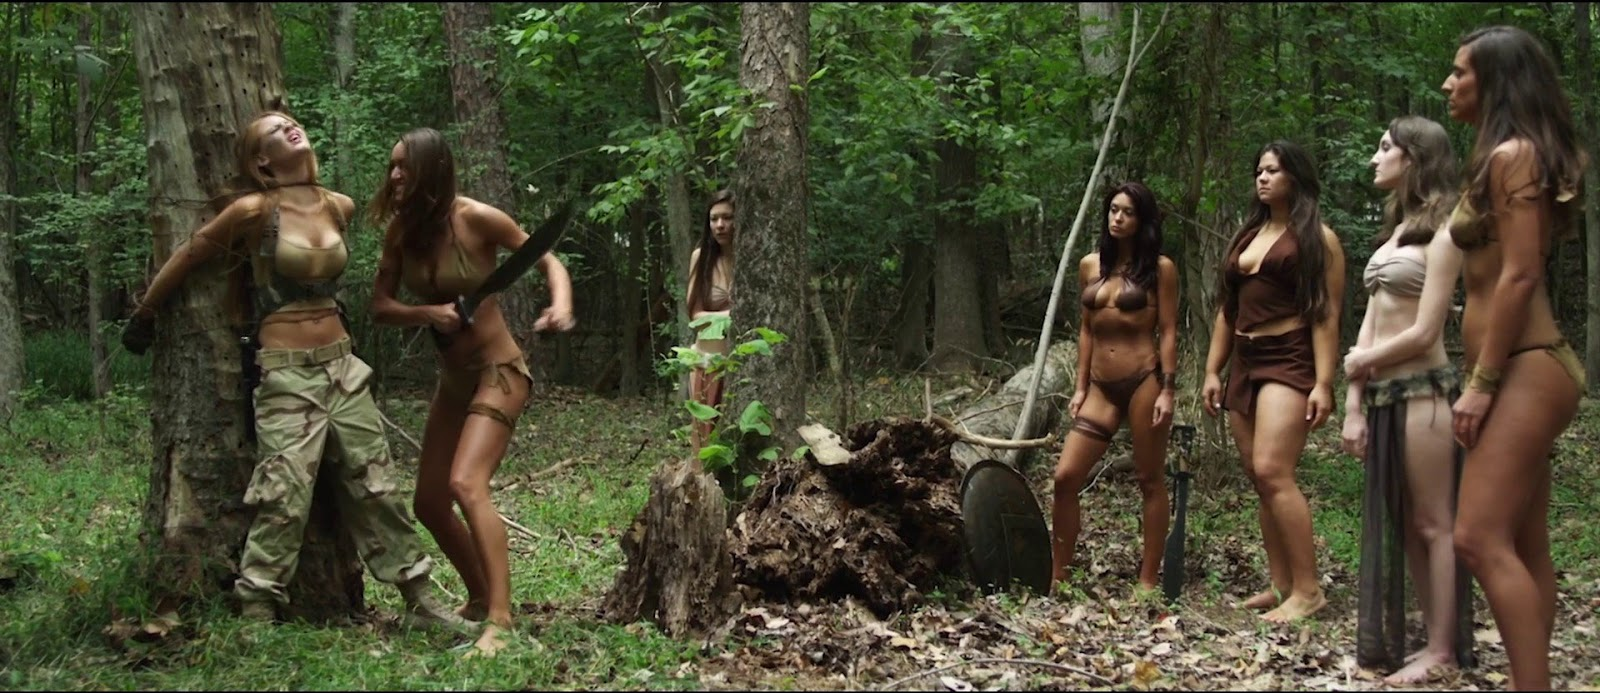 Album porn jungle exposed movie